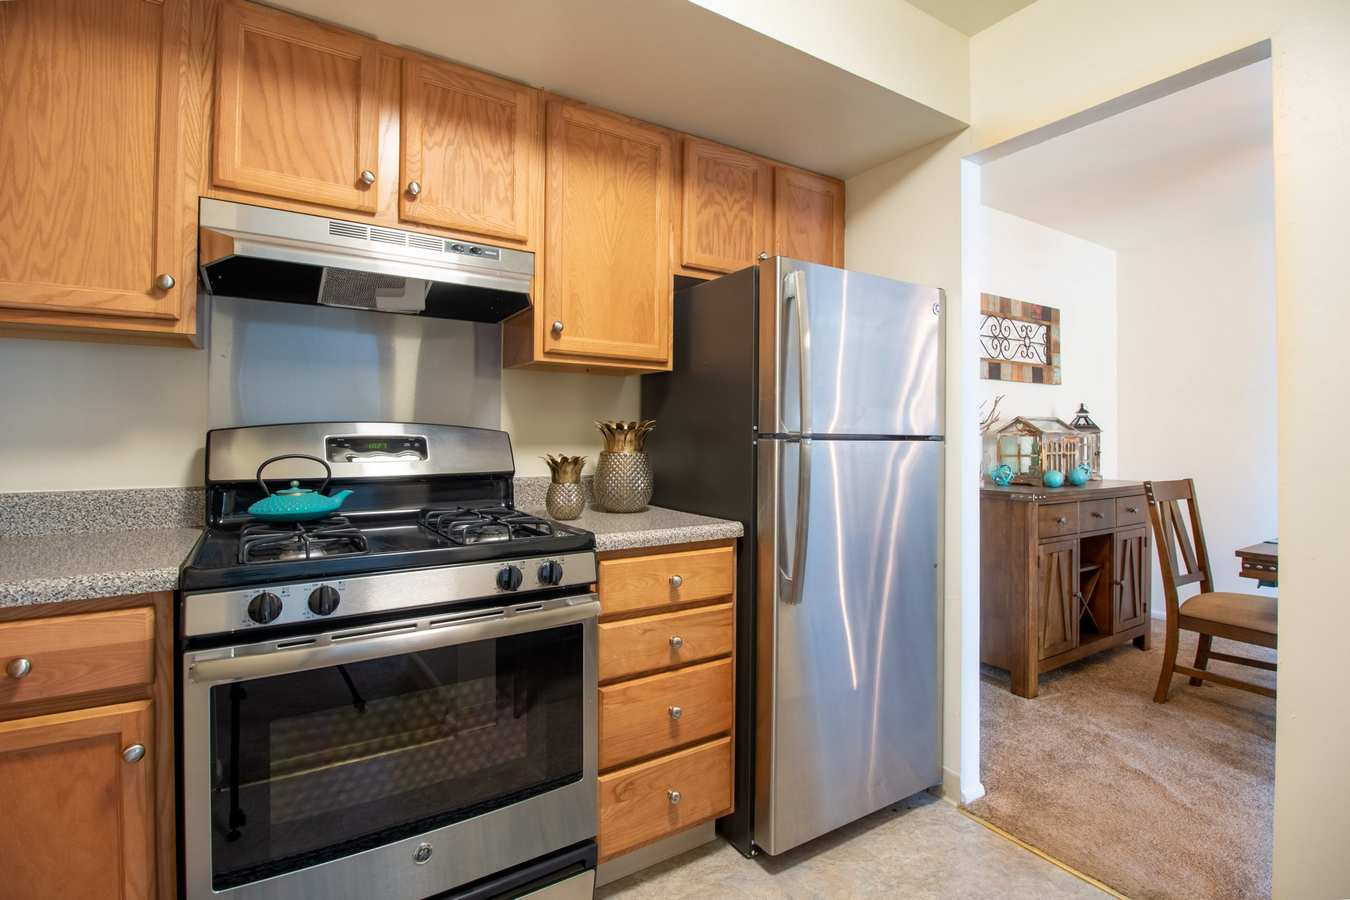 Model kitchen at Mill Village in Millville, New Jersey